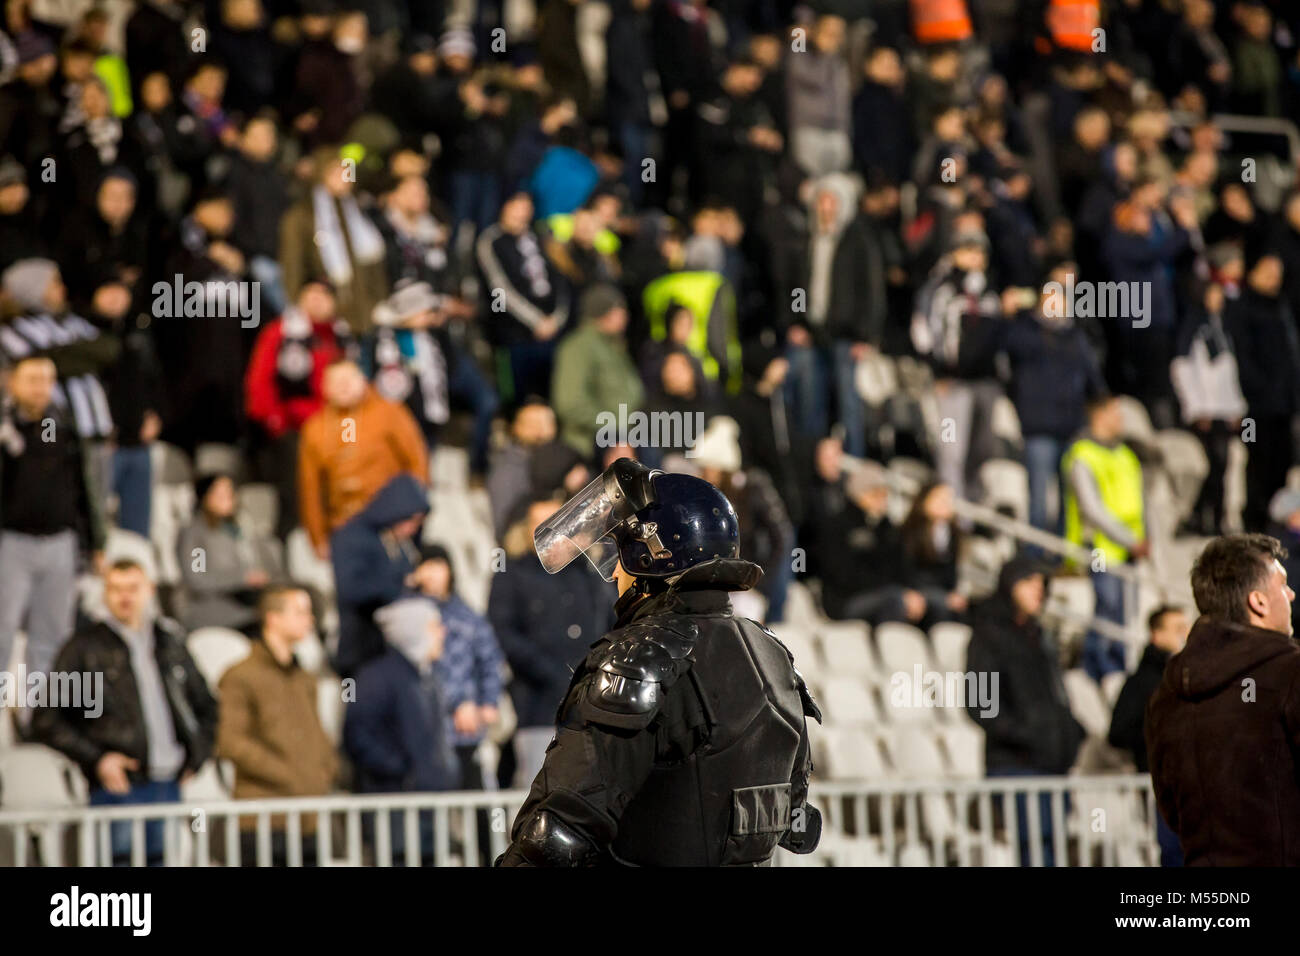 The police at the stadium event secure a safe match against the hooligans - Stock Image